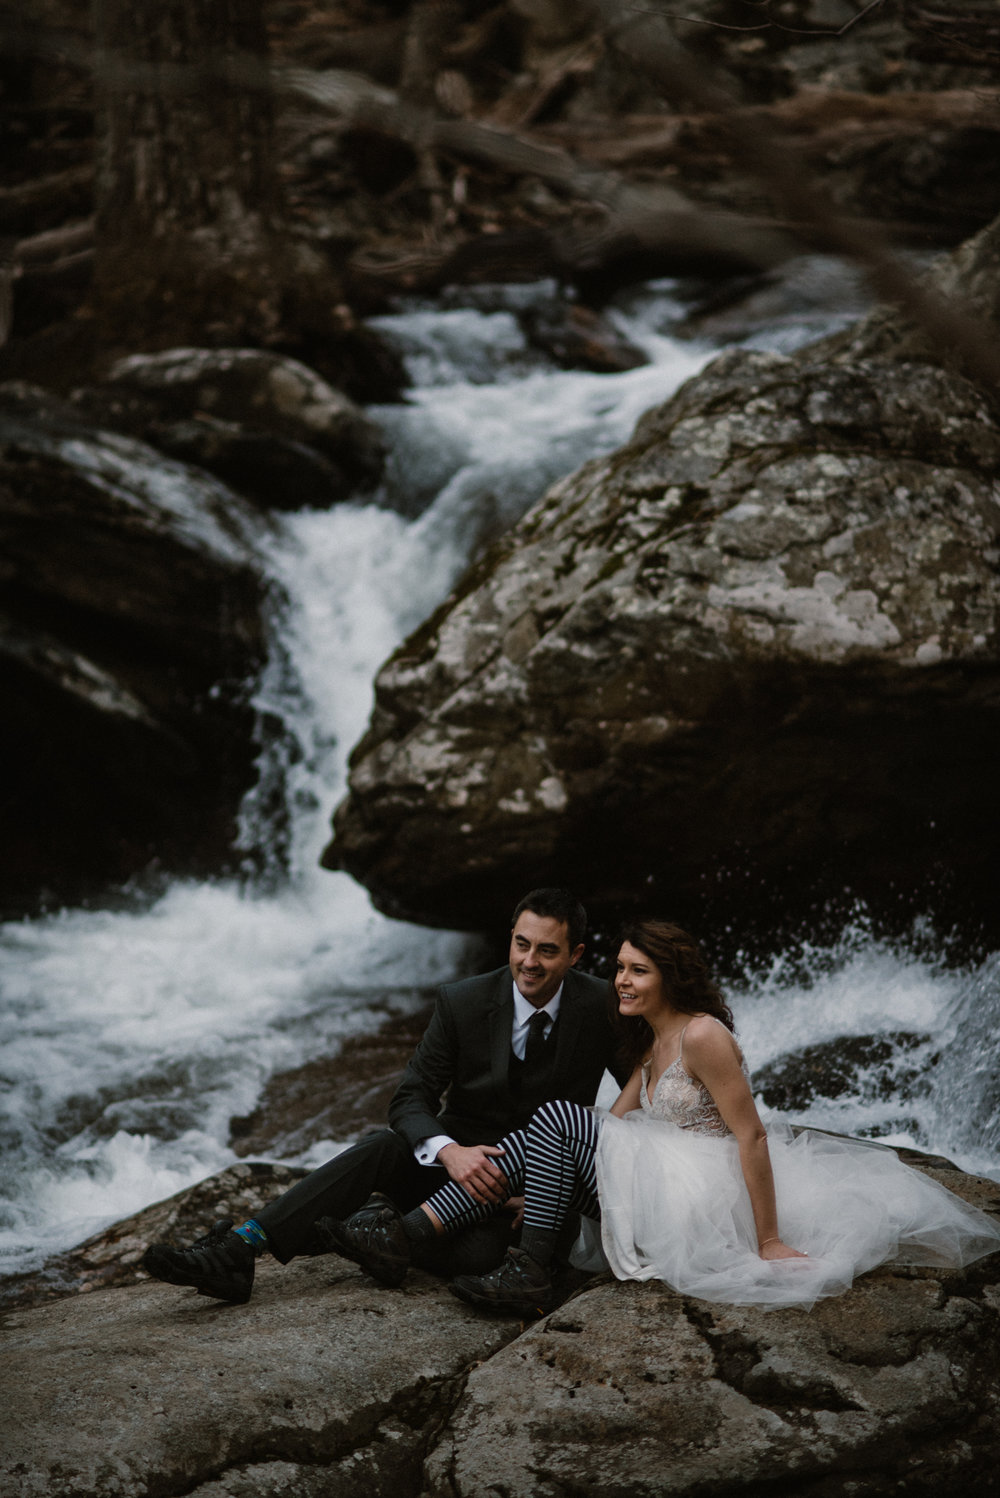 Stephanie and Steve - Shenandoah National Park Elopement - Sunrise Hiking Elopement - Adventurous Elopement - Virginia Elopement Photographer - Shenandoah national Park Wedding Photographer - White Sails Creative_6.jpg